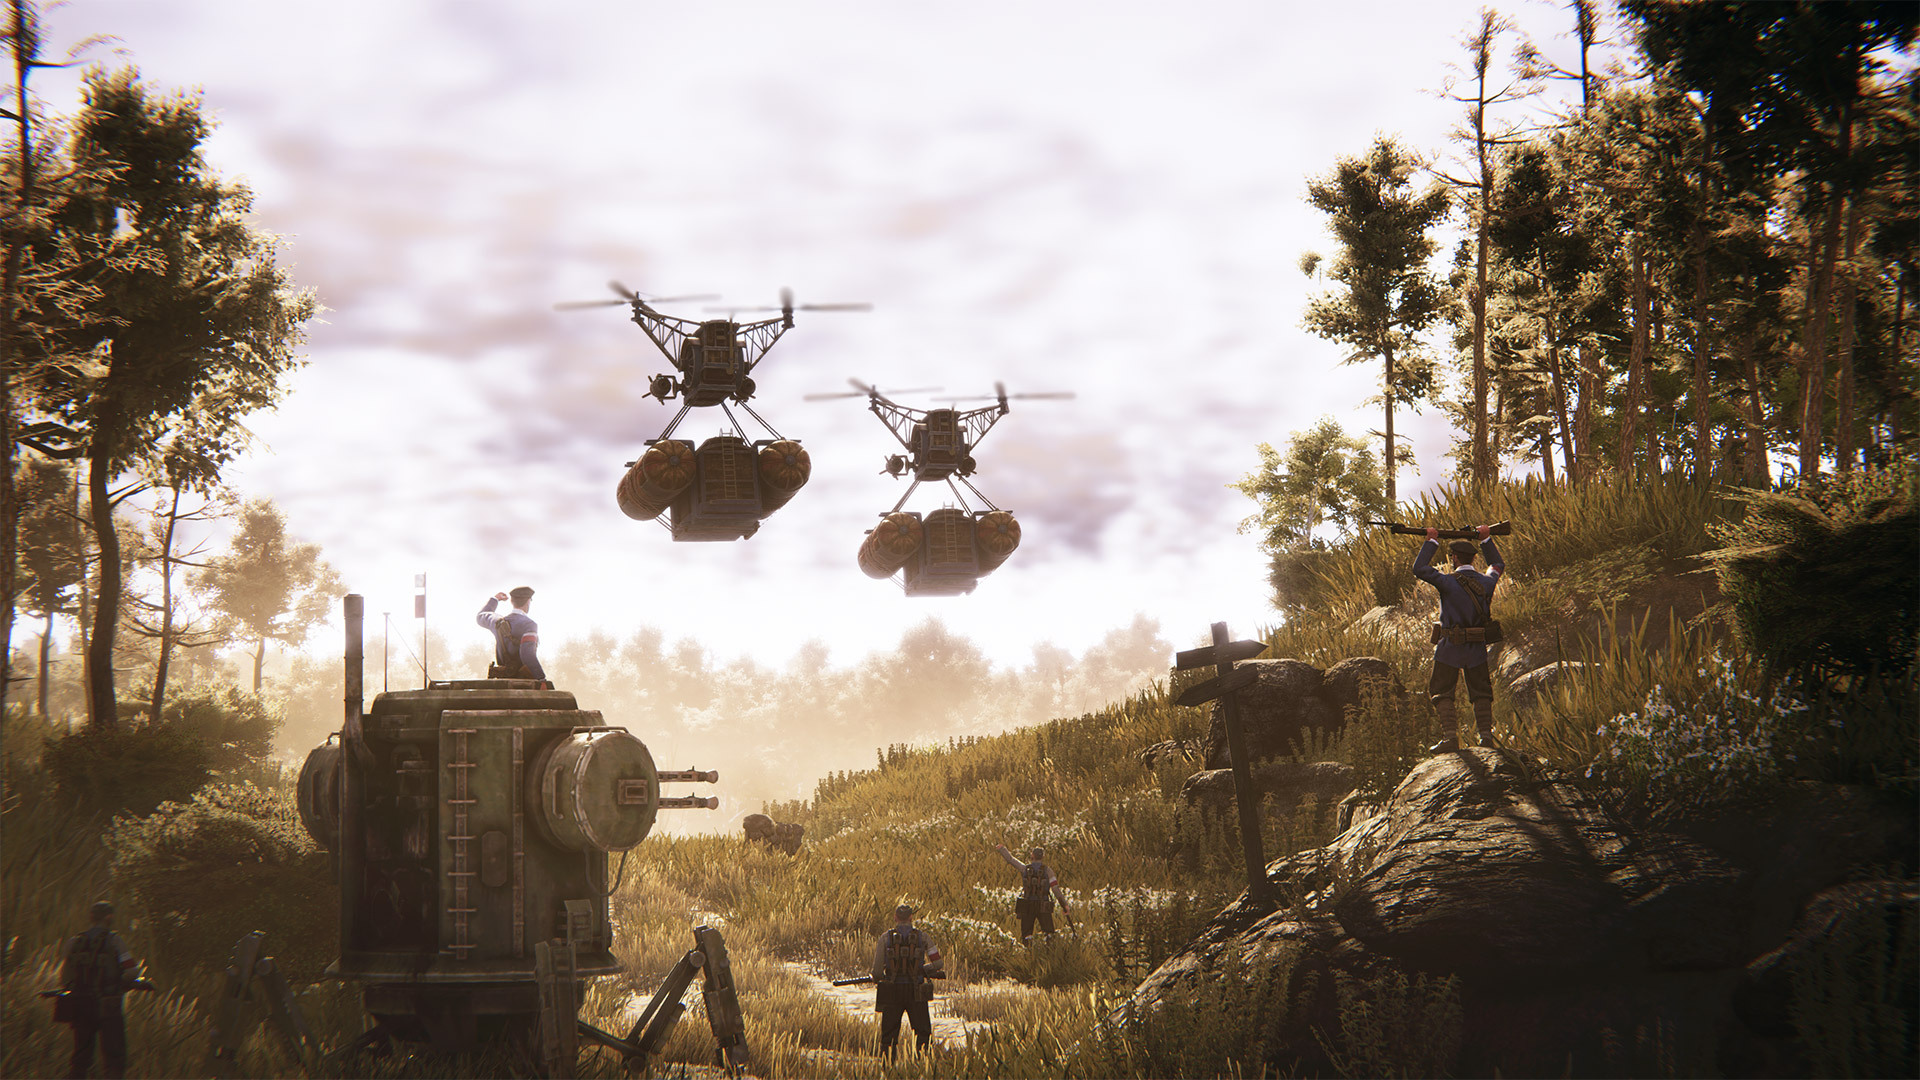 American airships battle mechs in the Iron Harvest DLC Operation Eagle